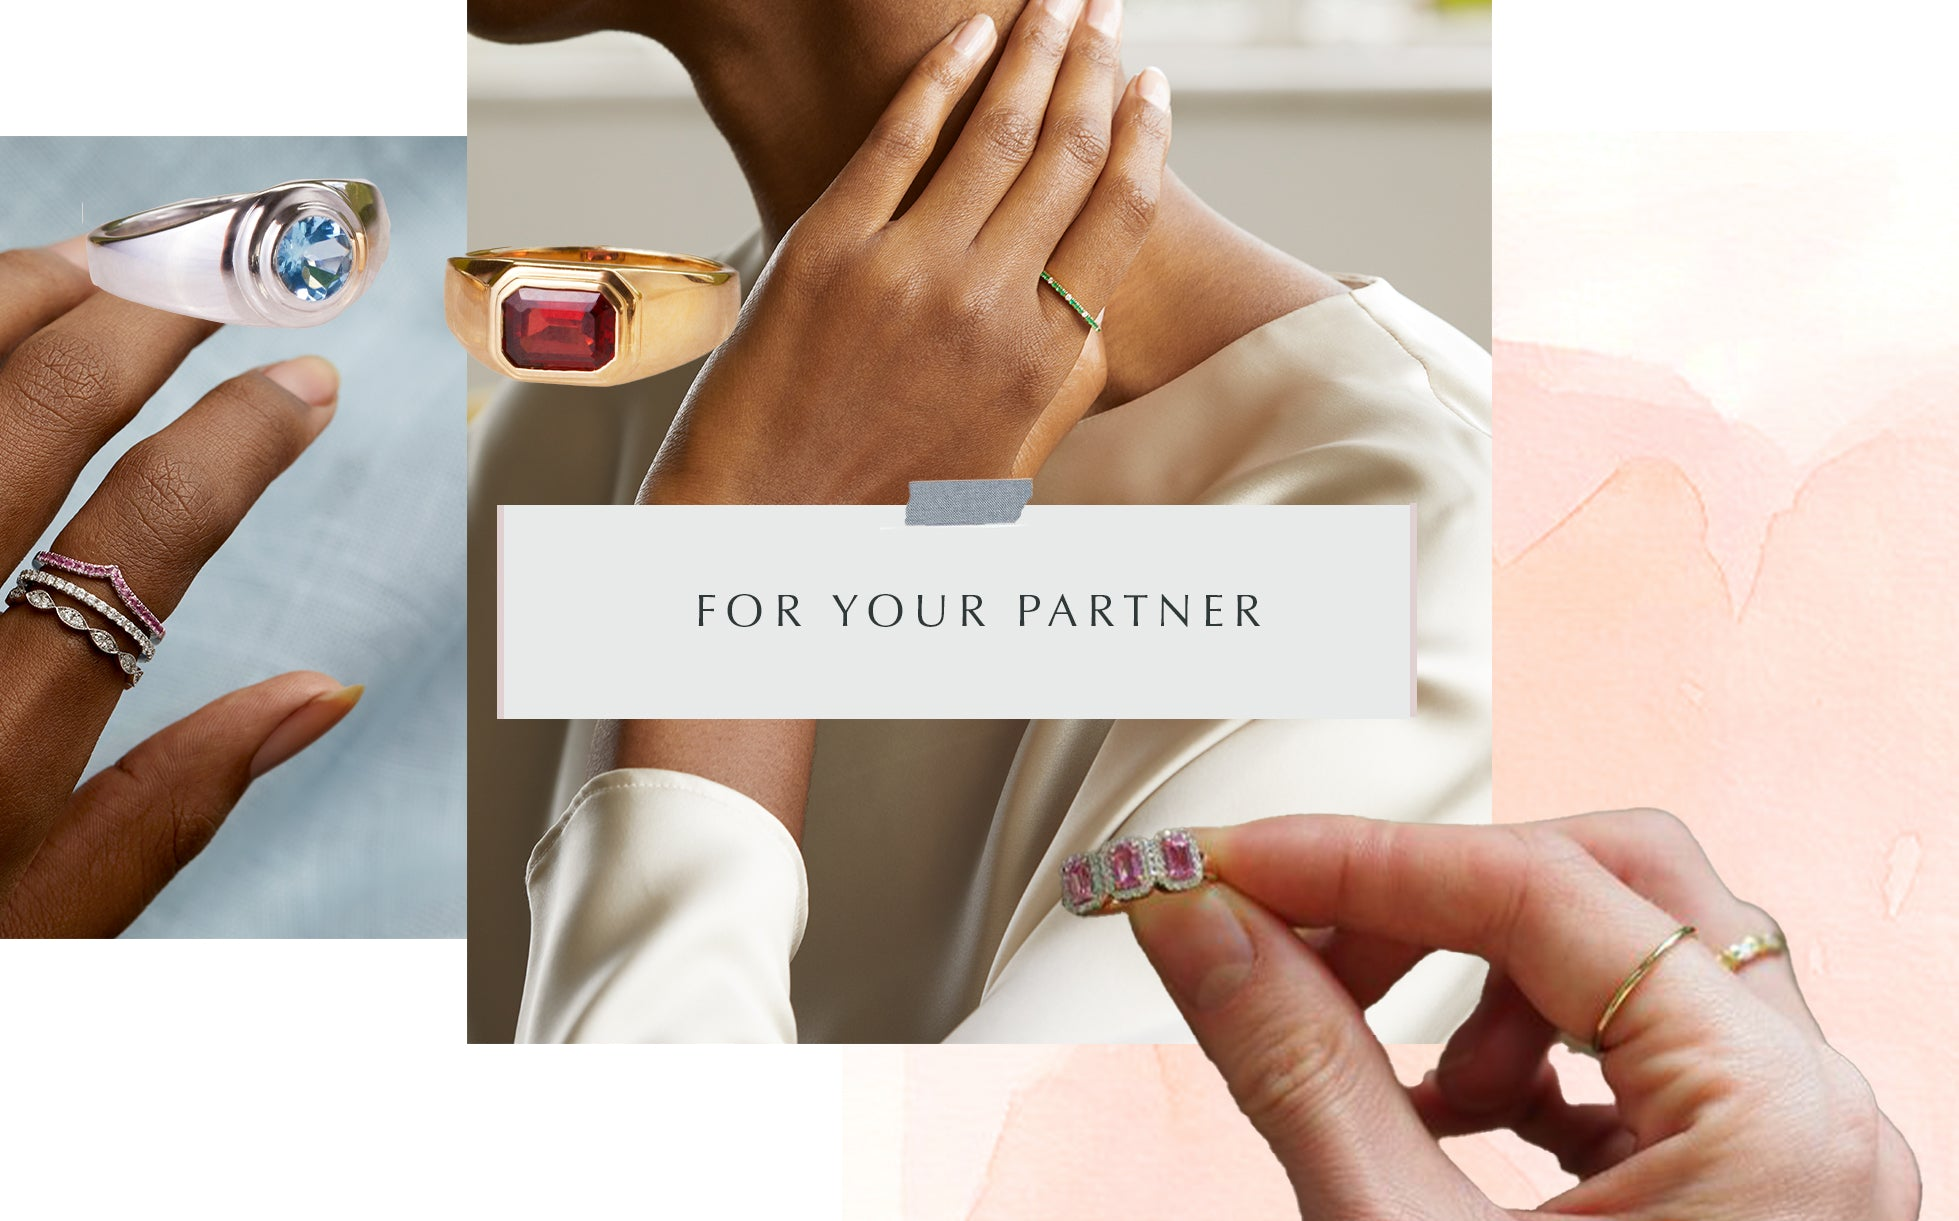 Valentines Gift Guide from Fenton for your partner, collage of images, including aquamarine, pink sapphire and garnet rings.